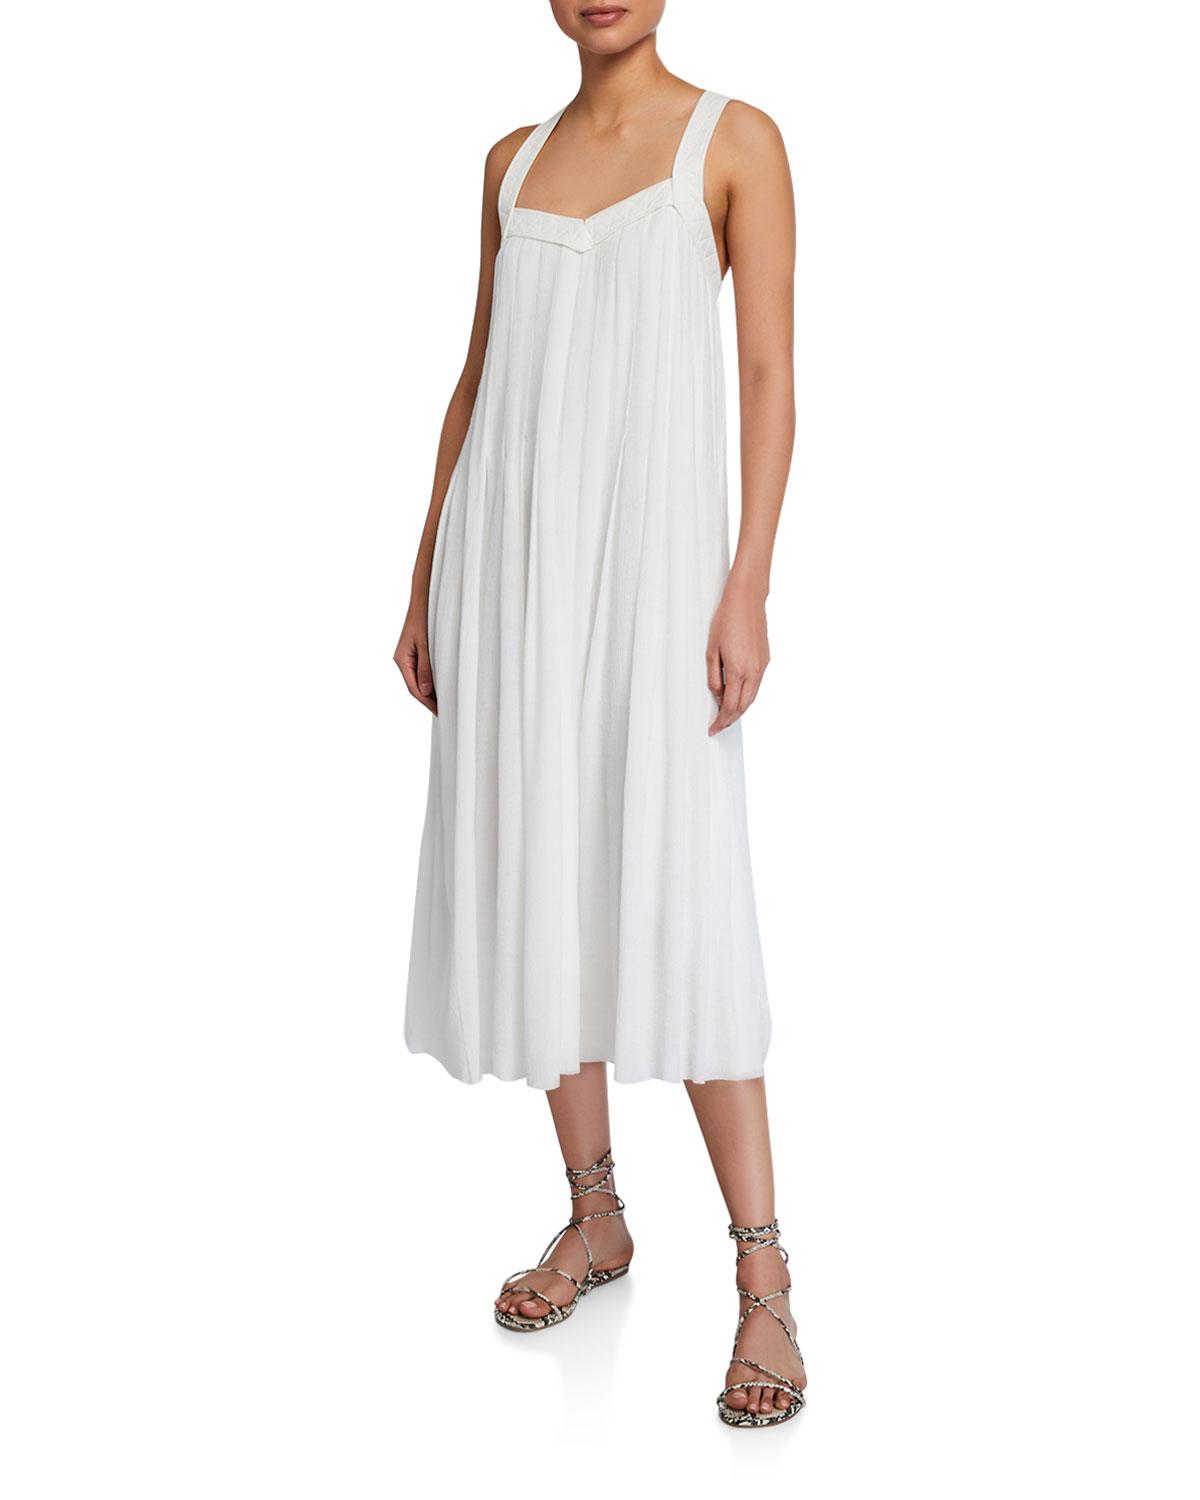 Rag & Bone Sabine Sleeveless Dress